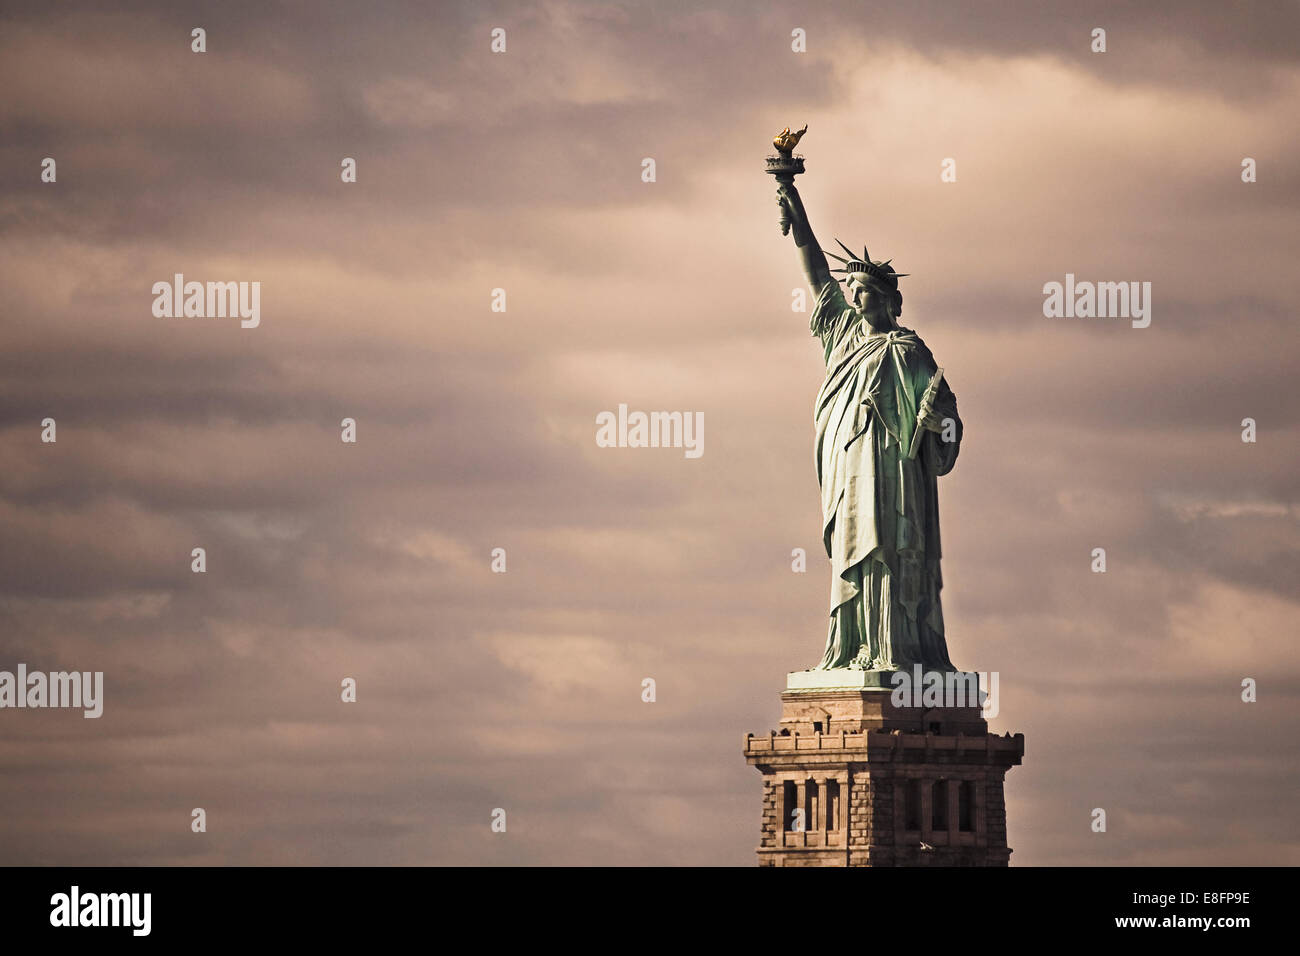 USA, New York State, New York City, Statue Of Liberty - Stock Image